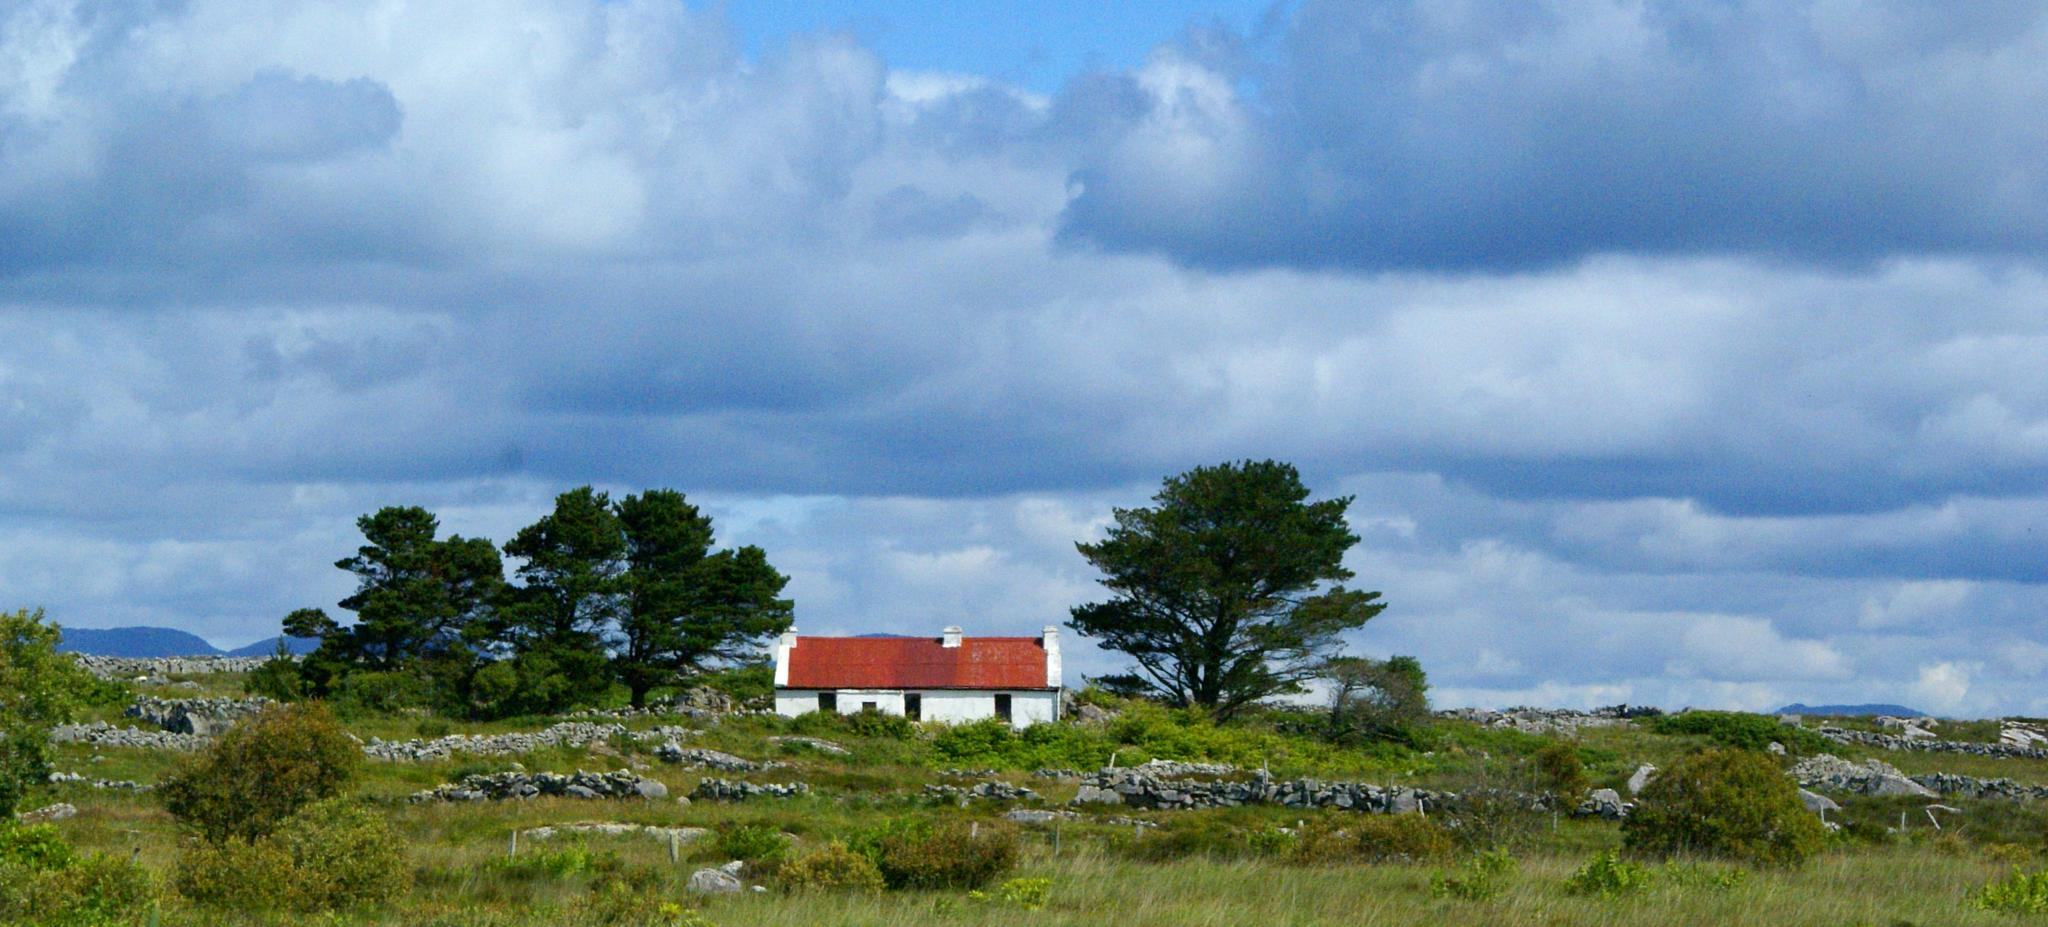 Photo in Landscape #country #ireland #blue #skies #red #green